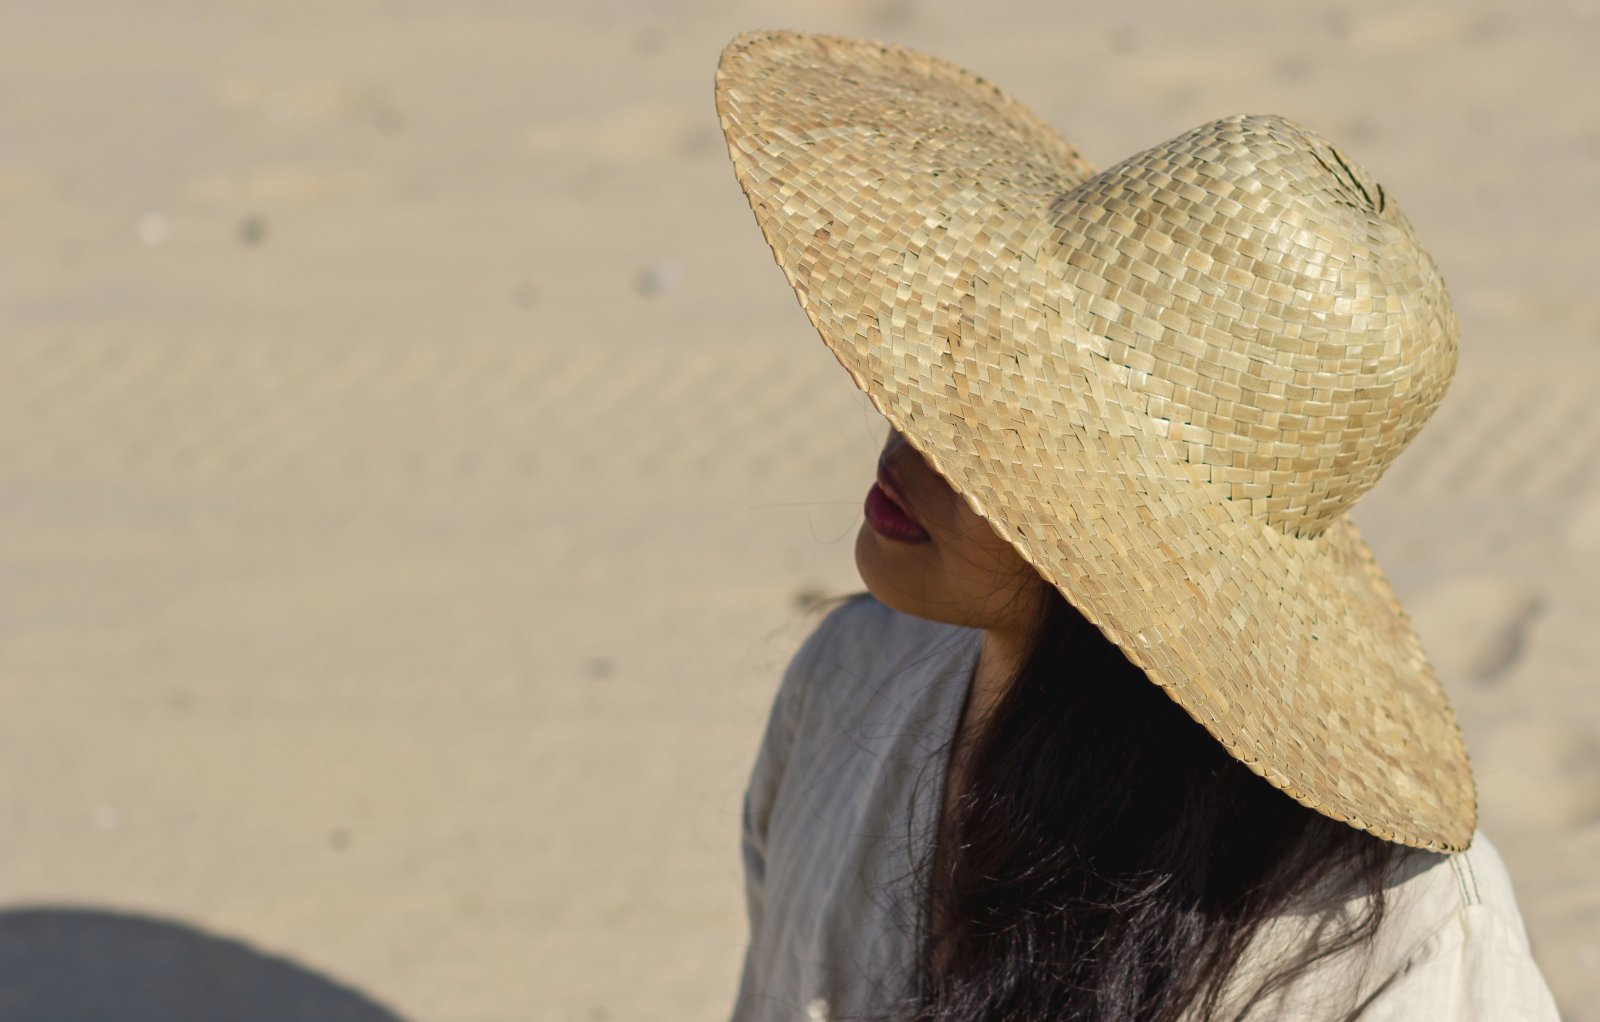 Handmde Sun Hat for the Beach in Summer